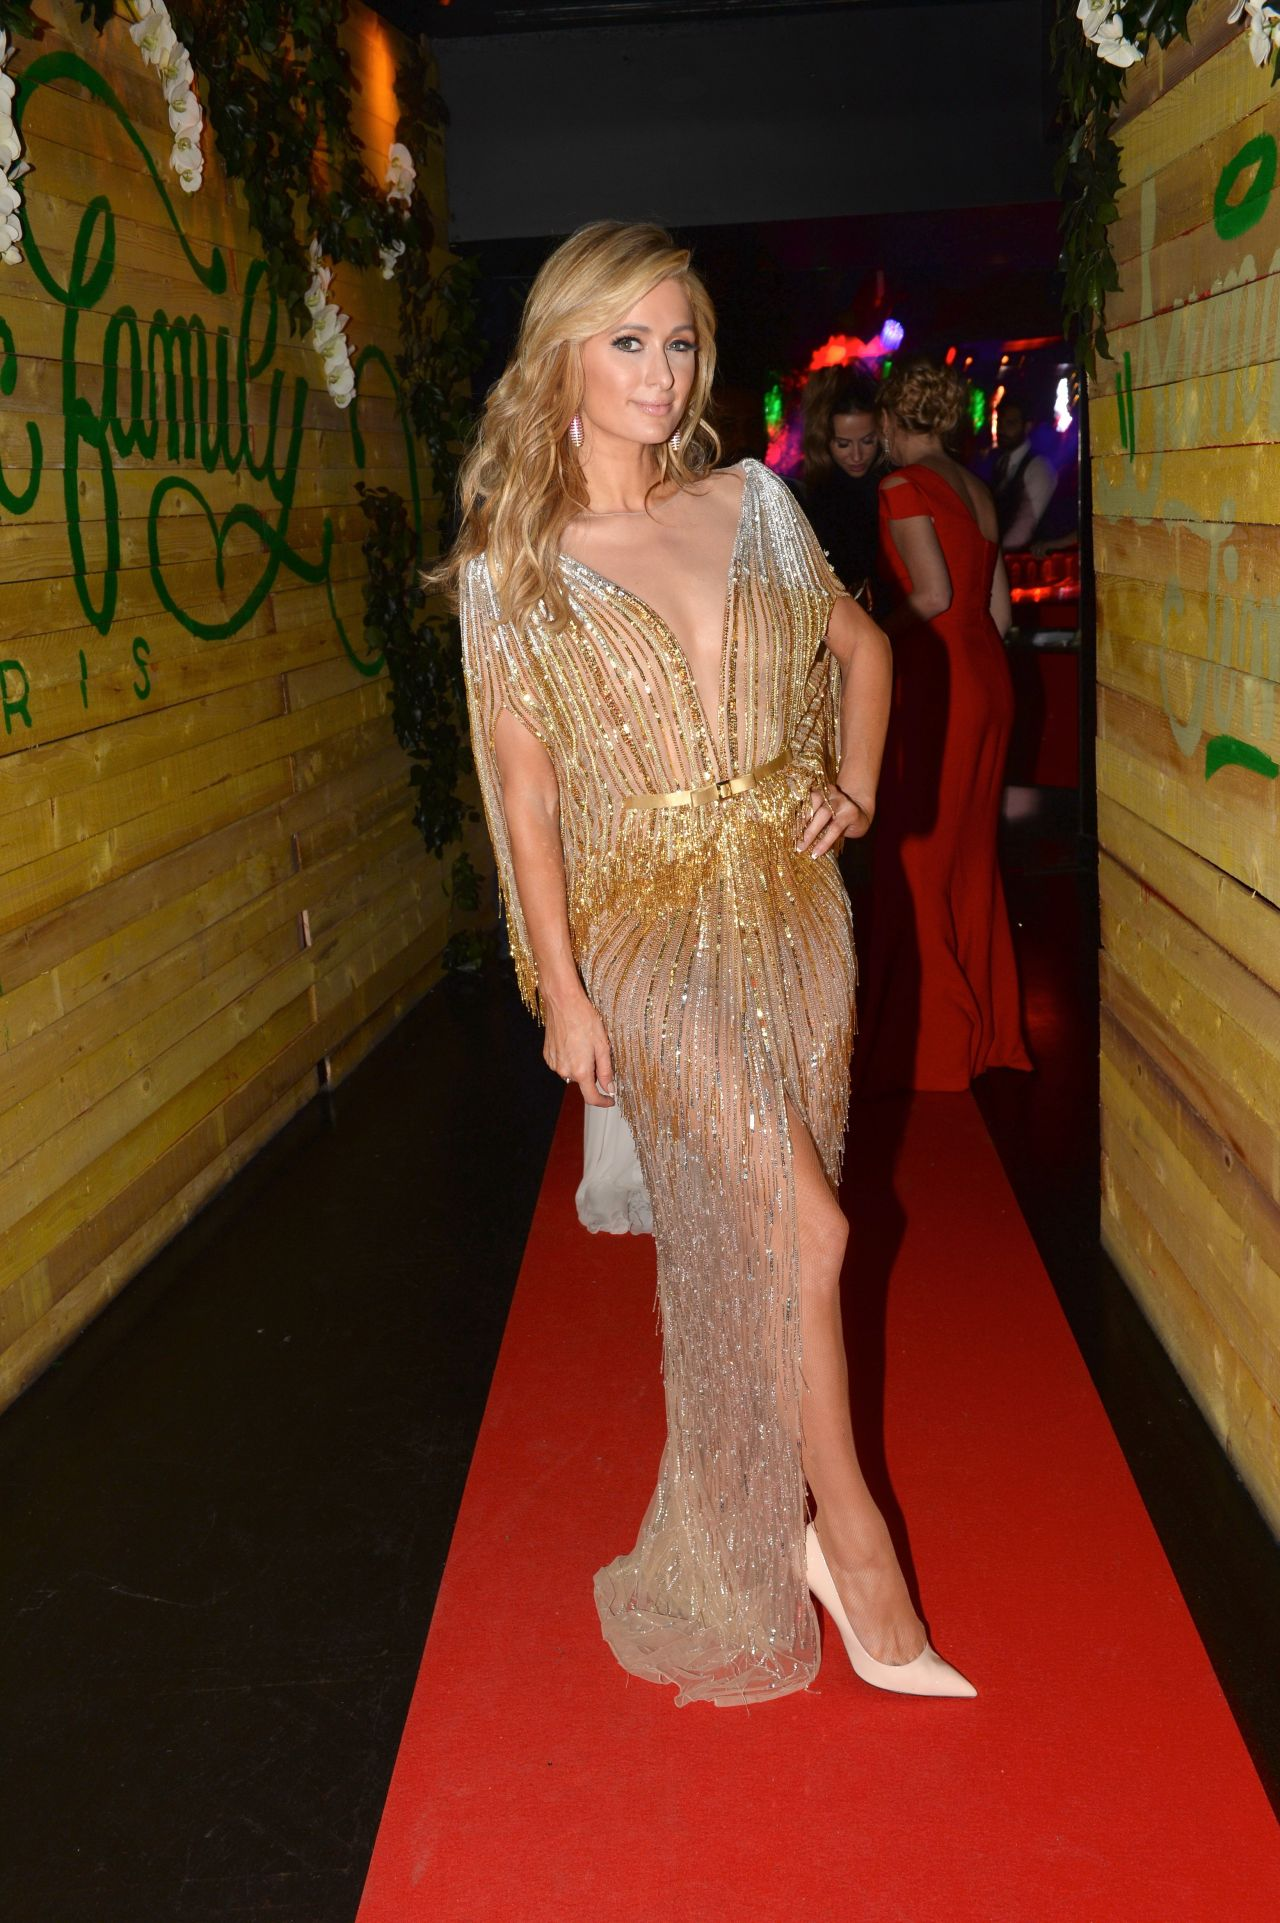 Paris Hilton At Love Ball After Party At The Club L Arc In